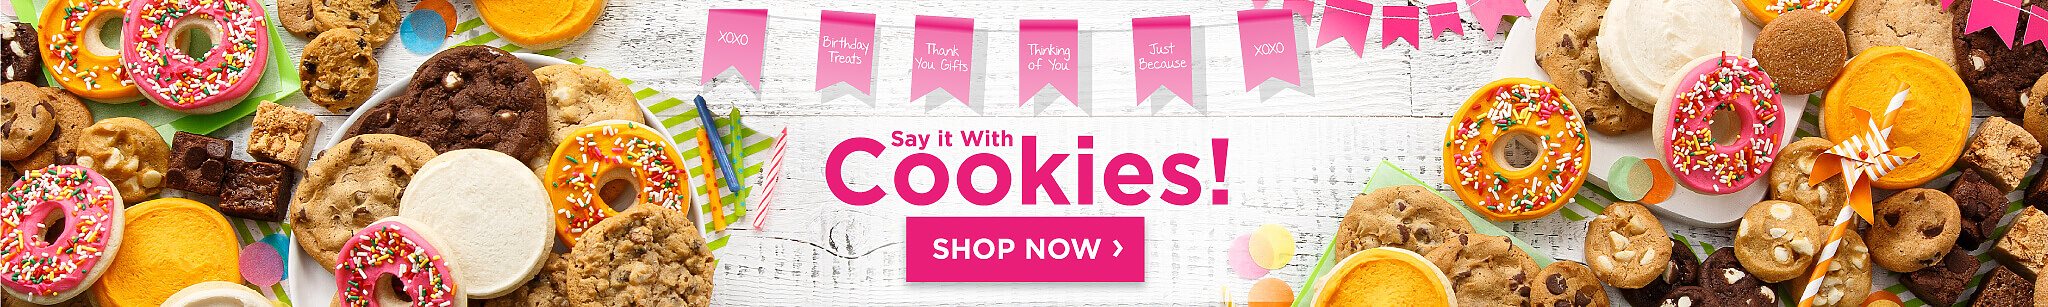 Say It With Cookies Shop Now.